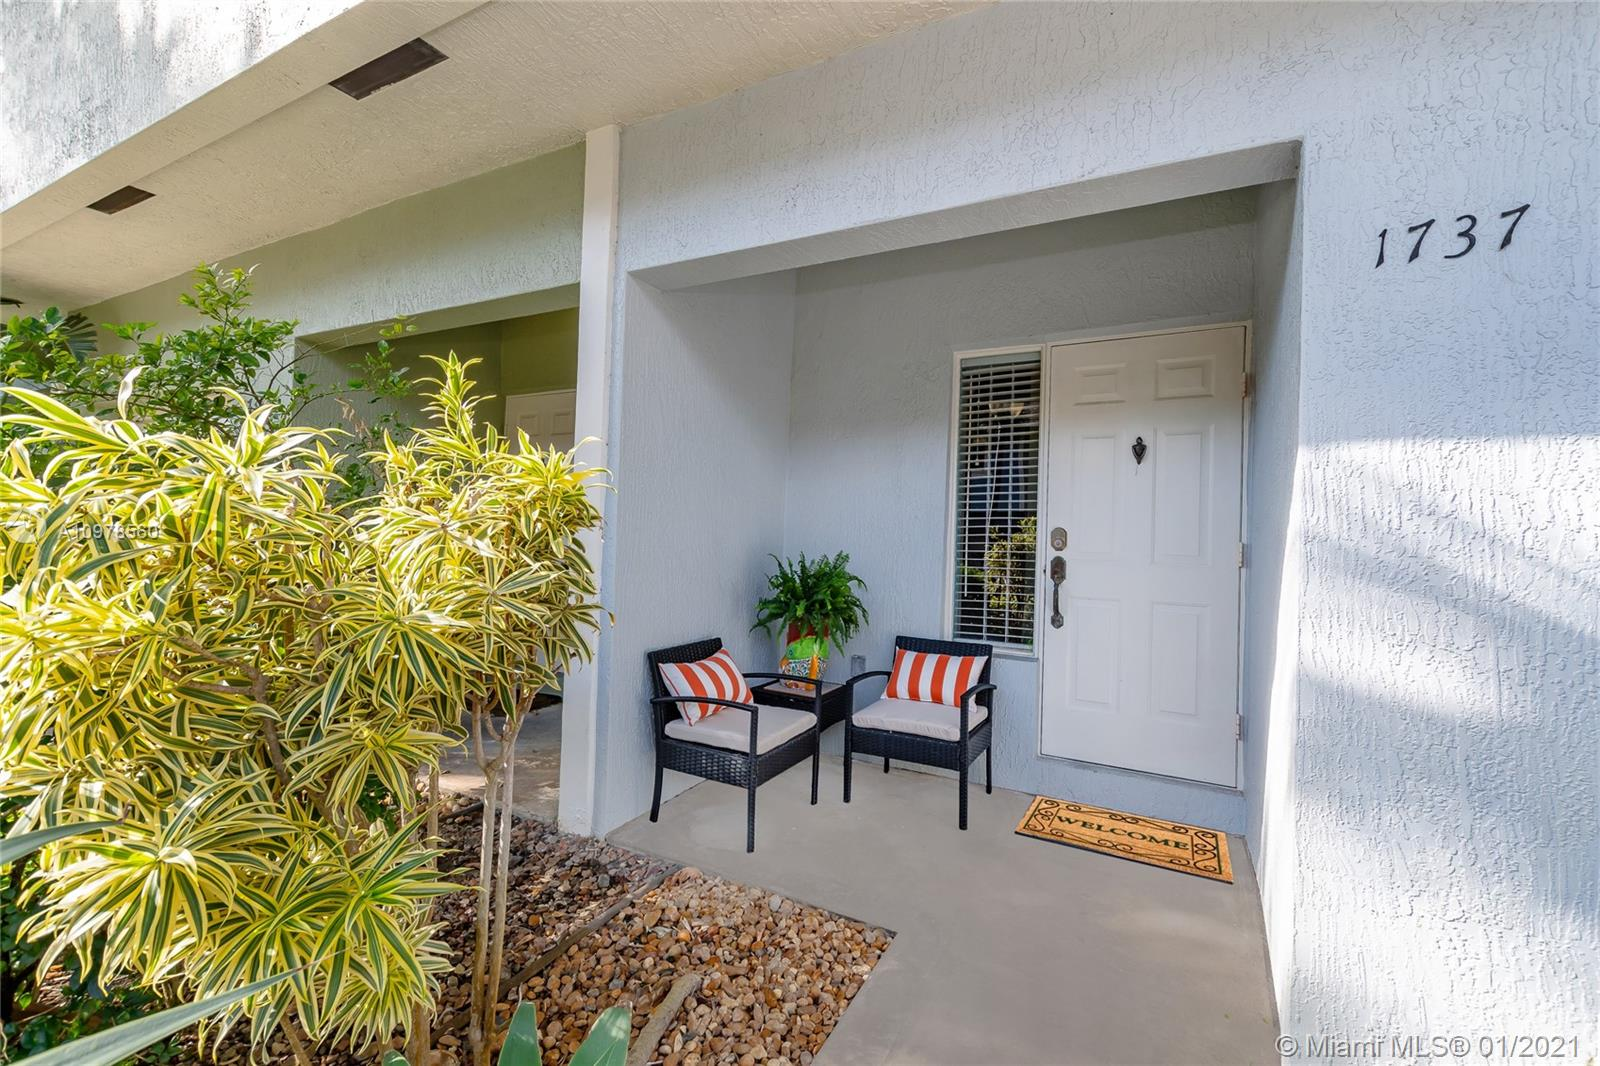 "Enjoy this Updated turn key Townhouse in a popular Gated Community of River Landings, just a few minutes to Wilton Drive. Open concept floor plan with large sliding glass doors leading out to a lovely Private tropical Courtyard Paradise with a water feature. Fabulous Kitchen with Granite Counters and additional Pantry. Originally a 3 Bedroom converted into 2 large Bedrooms with nice closet space. Stunning Primary Bath with double sinks and over sized shower. Volume ceilings on both floors natural light throughout. 1 Car Garage with additional storage. Community Pool / Gazebo, healthy reserves, well managed HOA. Pet Friendly community and minutes to the famous ""Drive"" dining, shopping, nightlife and easy access to Highways, Airport and the Beach! Location is superior. A pleasure to show."